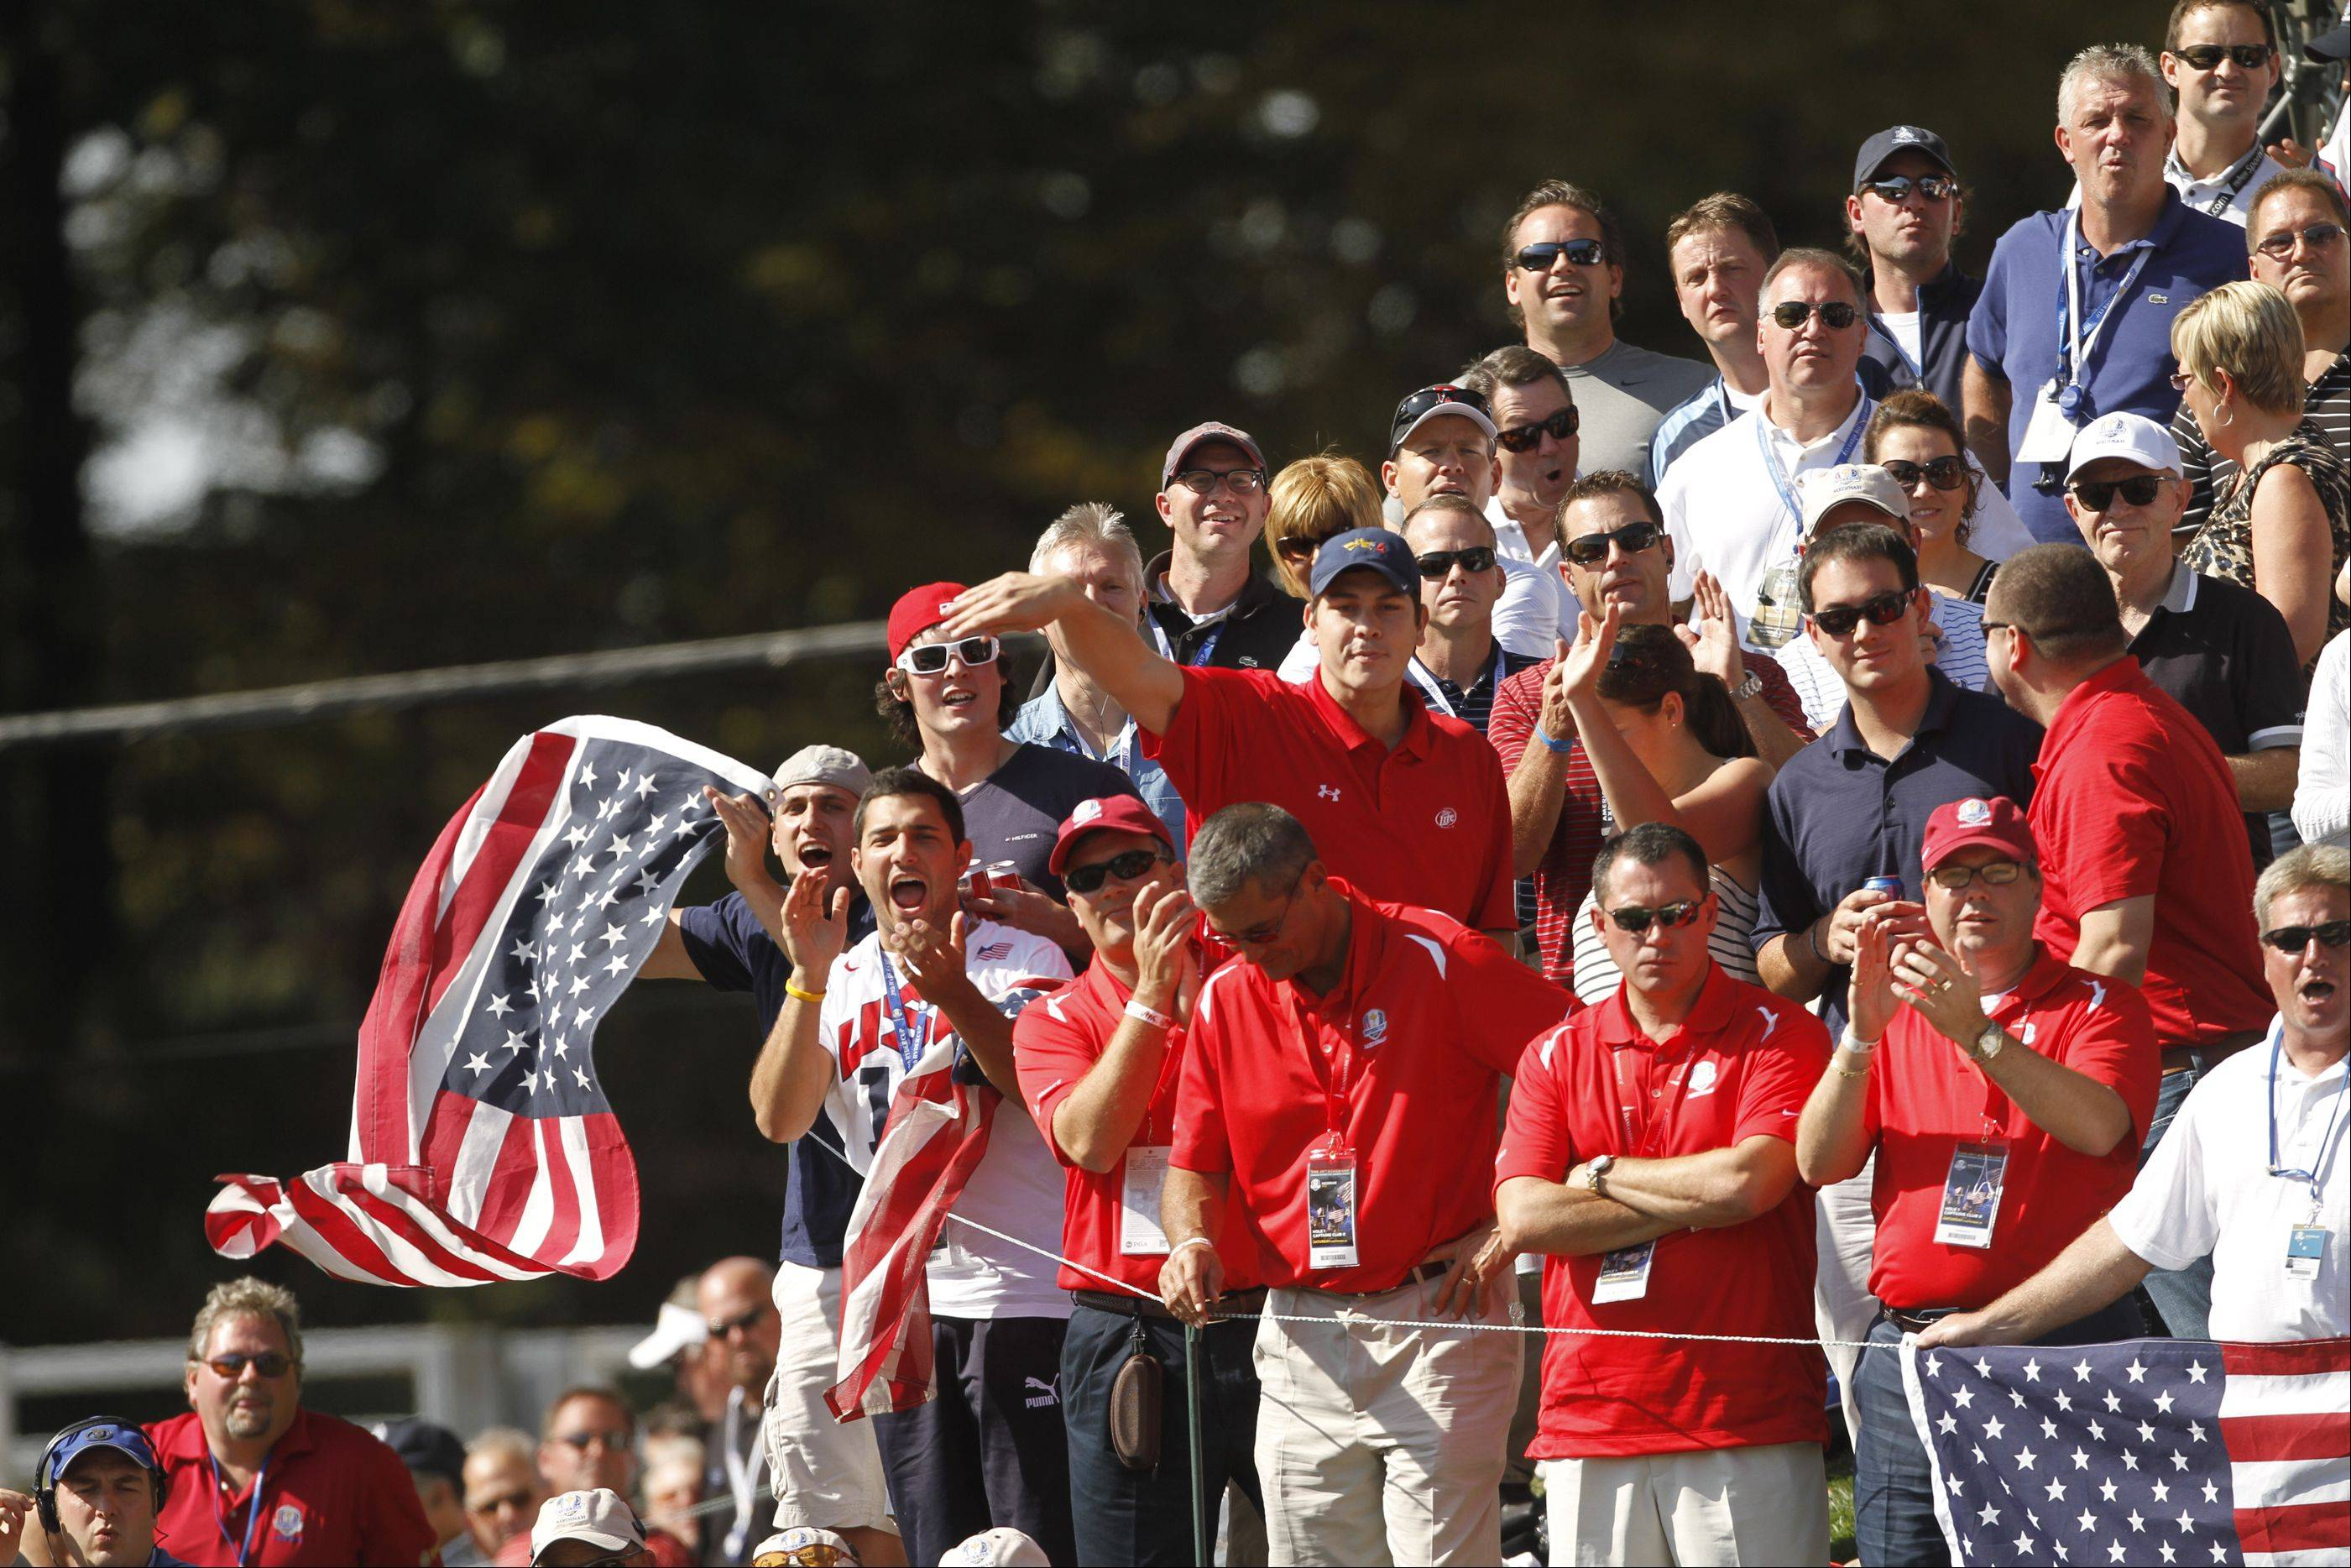 US fans react after Ian Poulter missed his birdie putt on the 17th hole Saturday morning during day 2 of the 2012 Ryder Cup at Medinah Country Club.